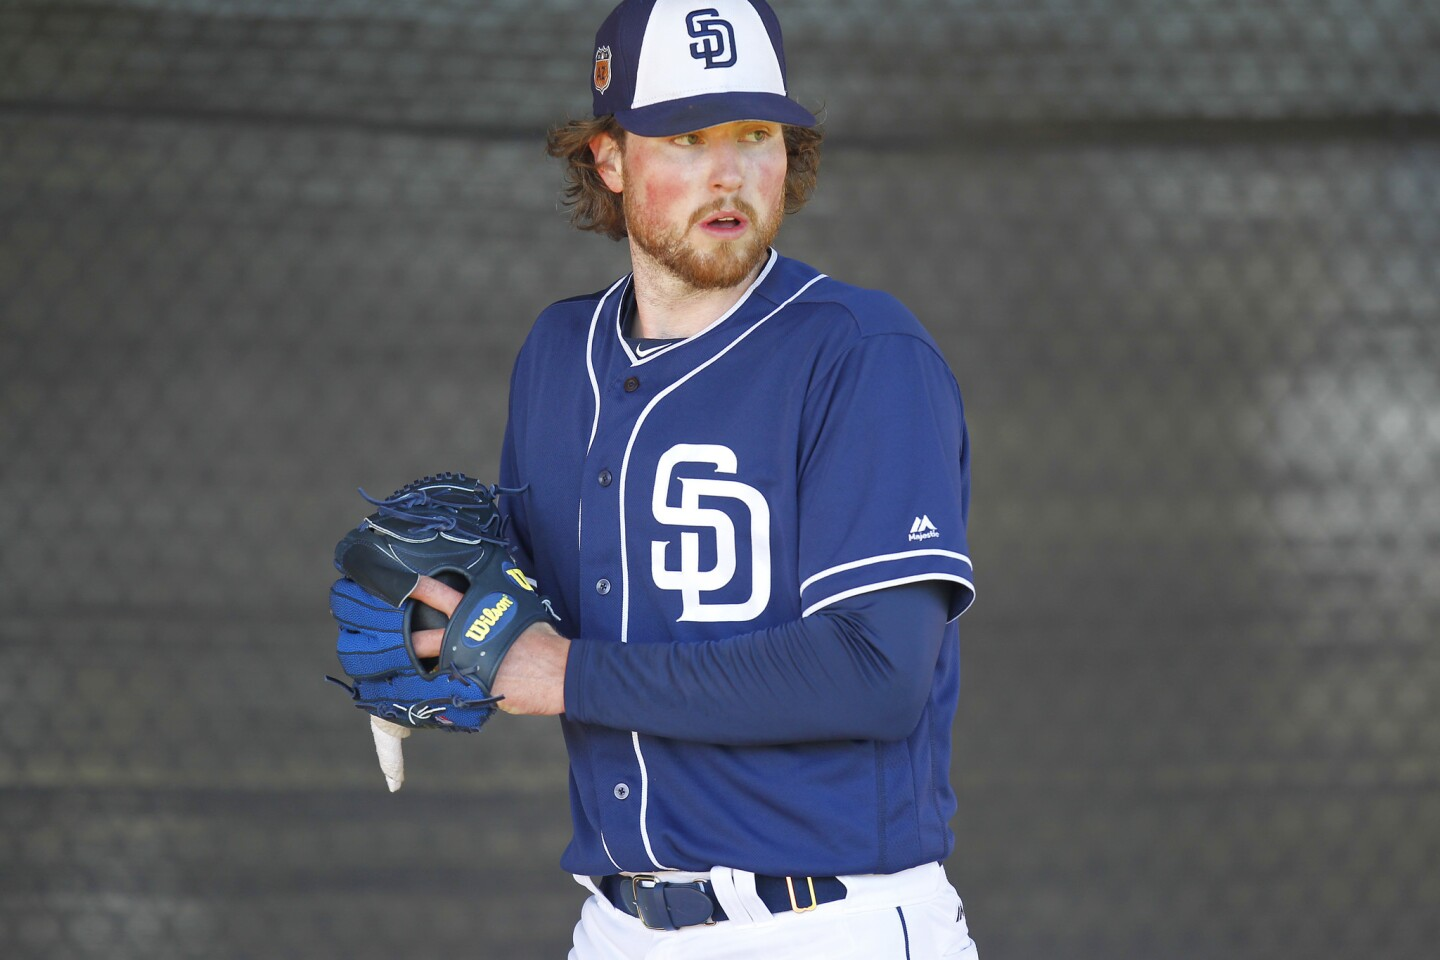 San Diego Padres Carter Capps pitches during a spring training practice. (Photo by K.C. Alfred/The San Diego Union-Tribune)